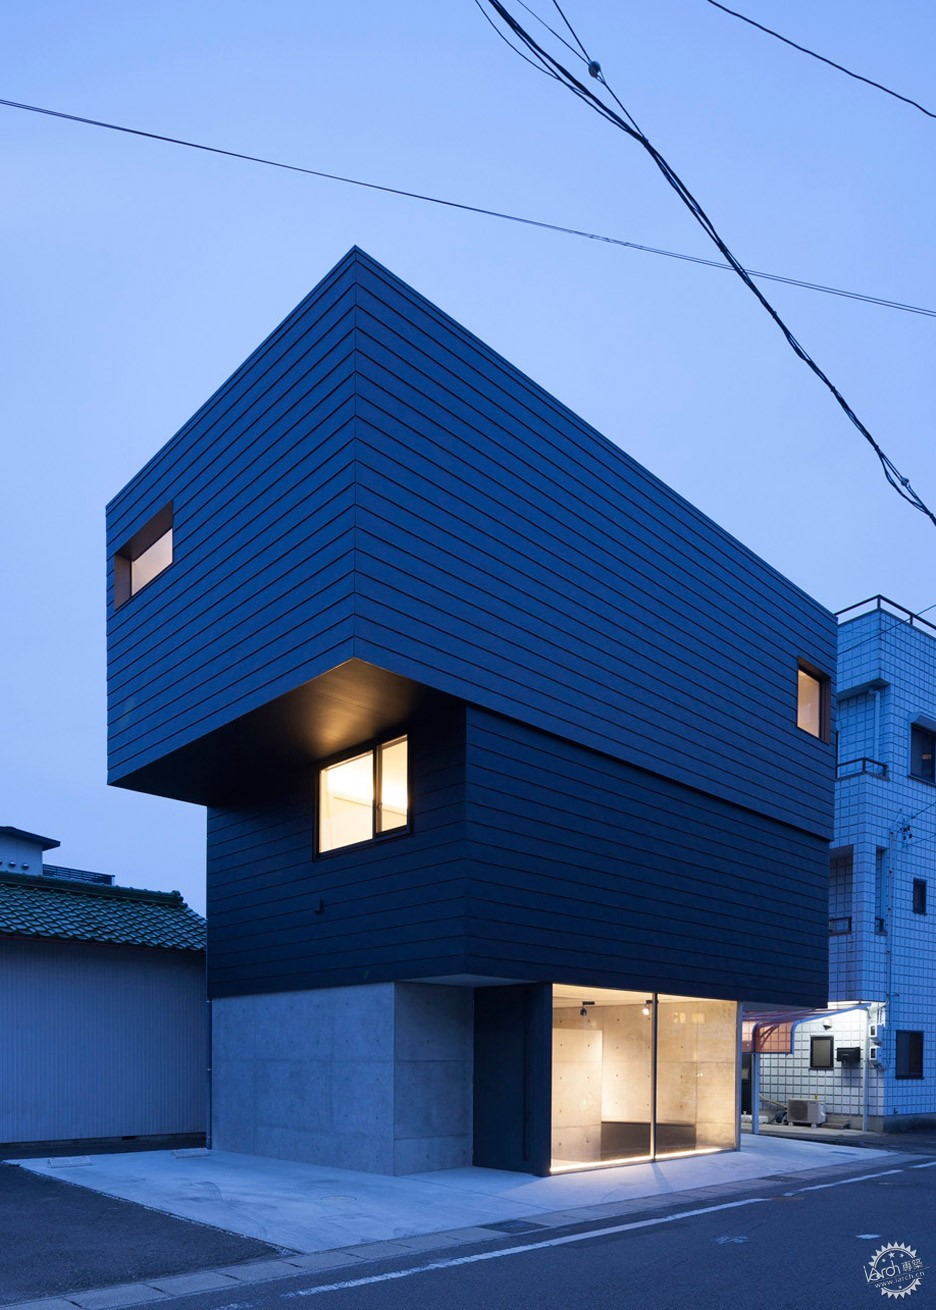 日本Gaze住宅/ APOLLO Architects & Associates第3张图片